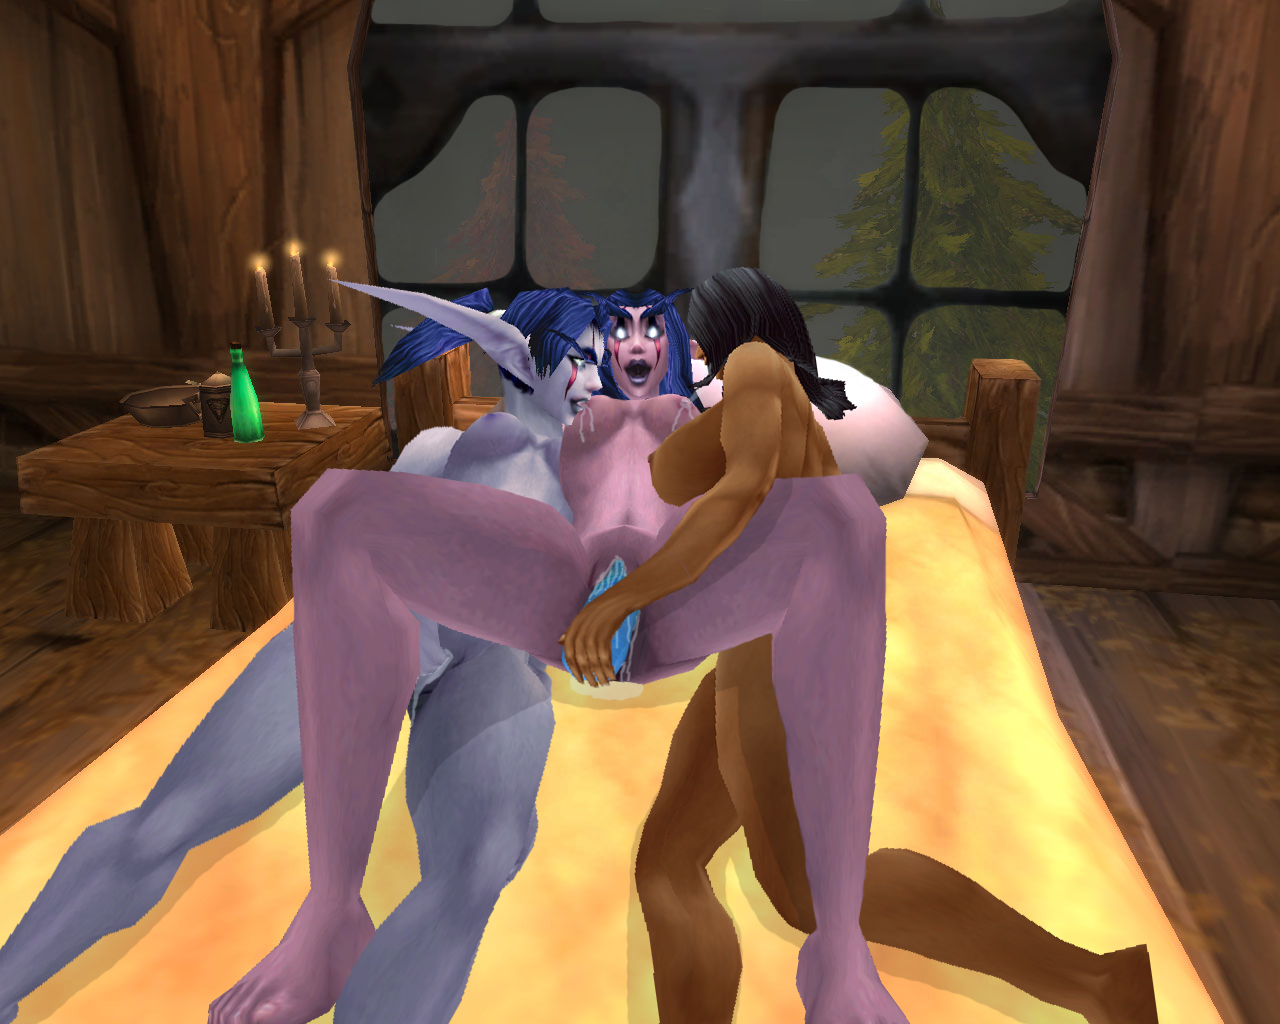 Download the latest wow nude patch hentai videos